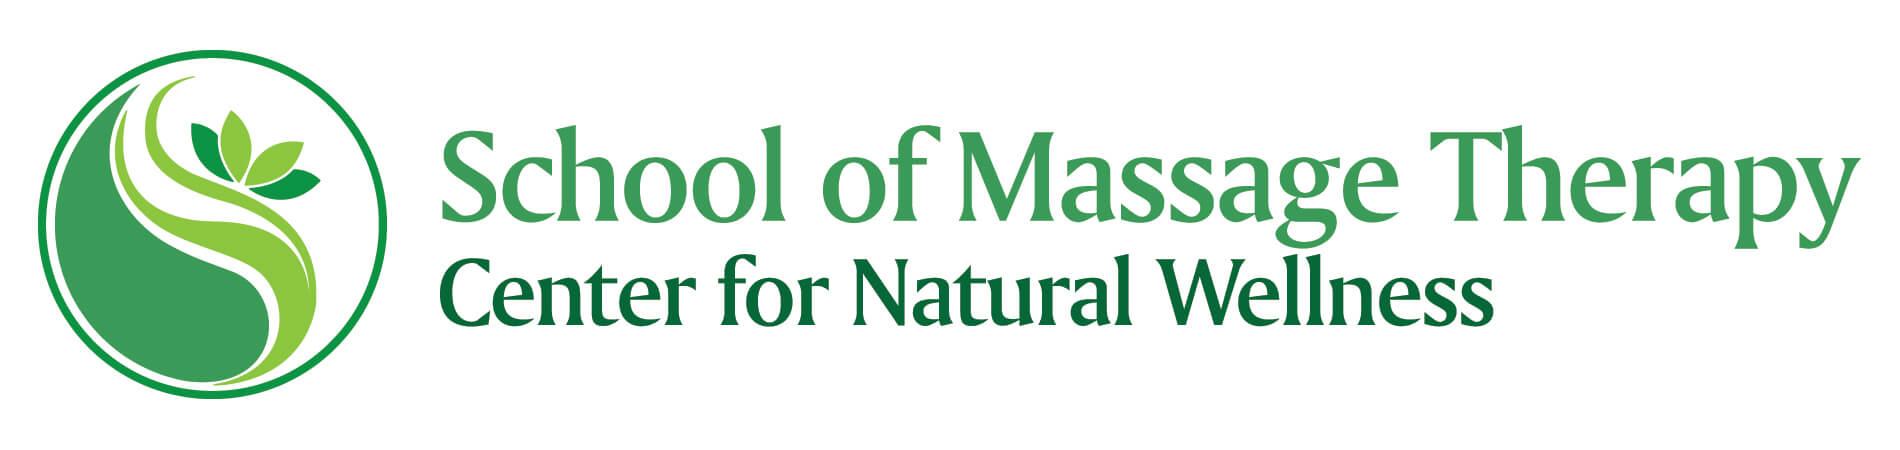 Center for Natural Wellness School of Massage Therapy